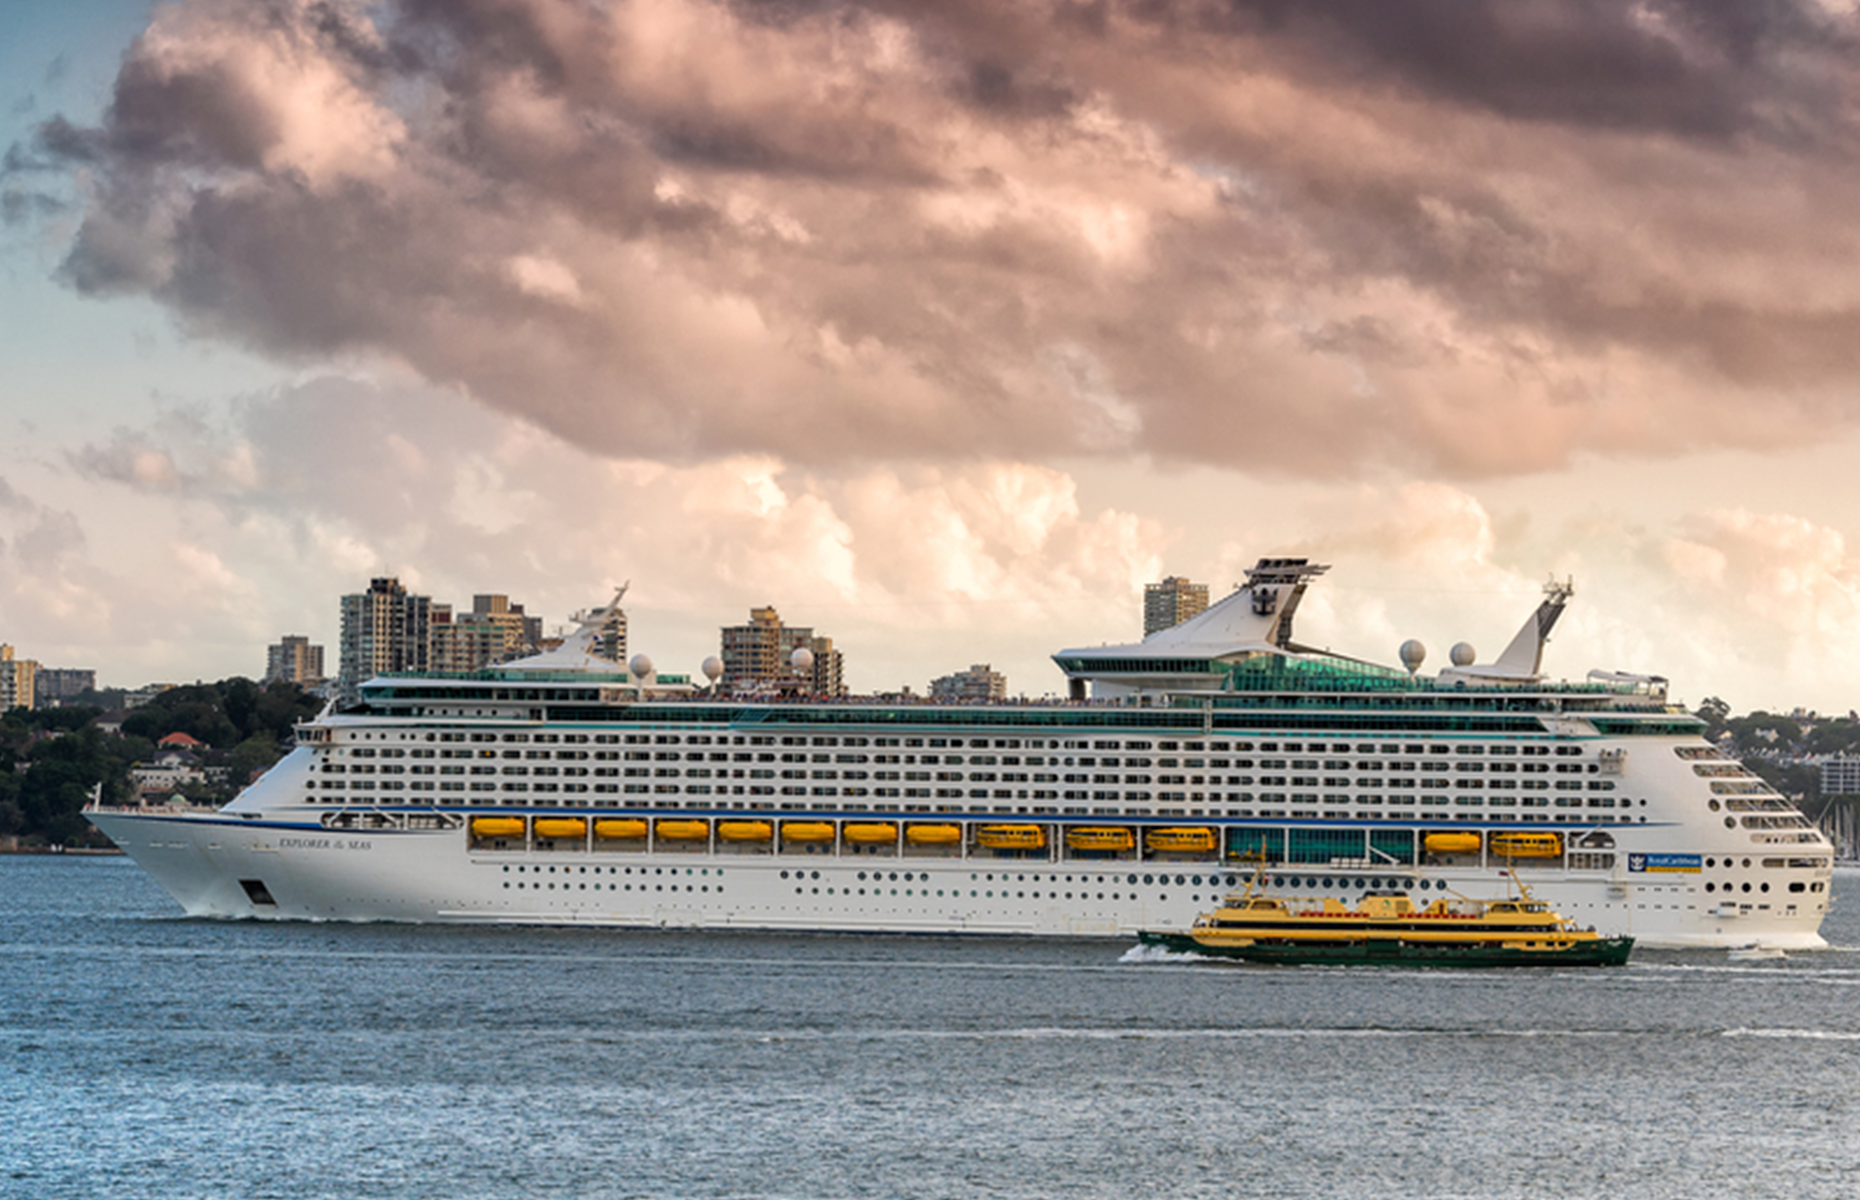 Slide 1 of 31: Sydney,NSW, Australia on 24th Dec 2015:Explorer of the Seas is a Voyager-class cruise ship owned and operated by Royal Caribbean International built in 1999. She can accommodate over 3,000 passenegrs